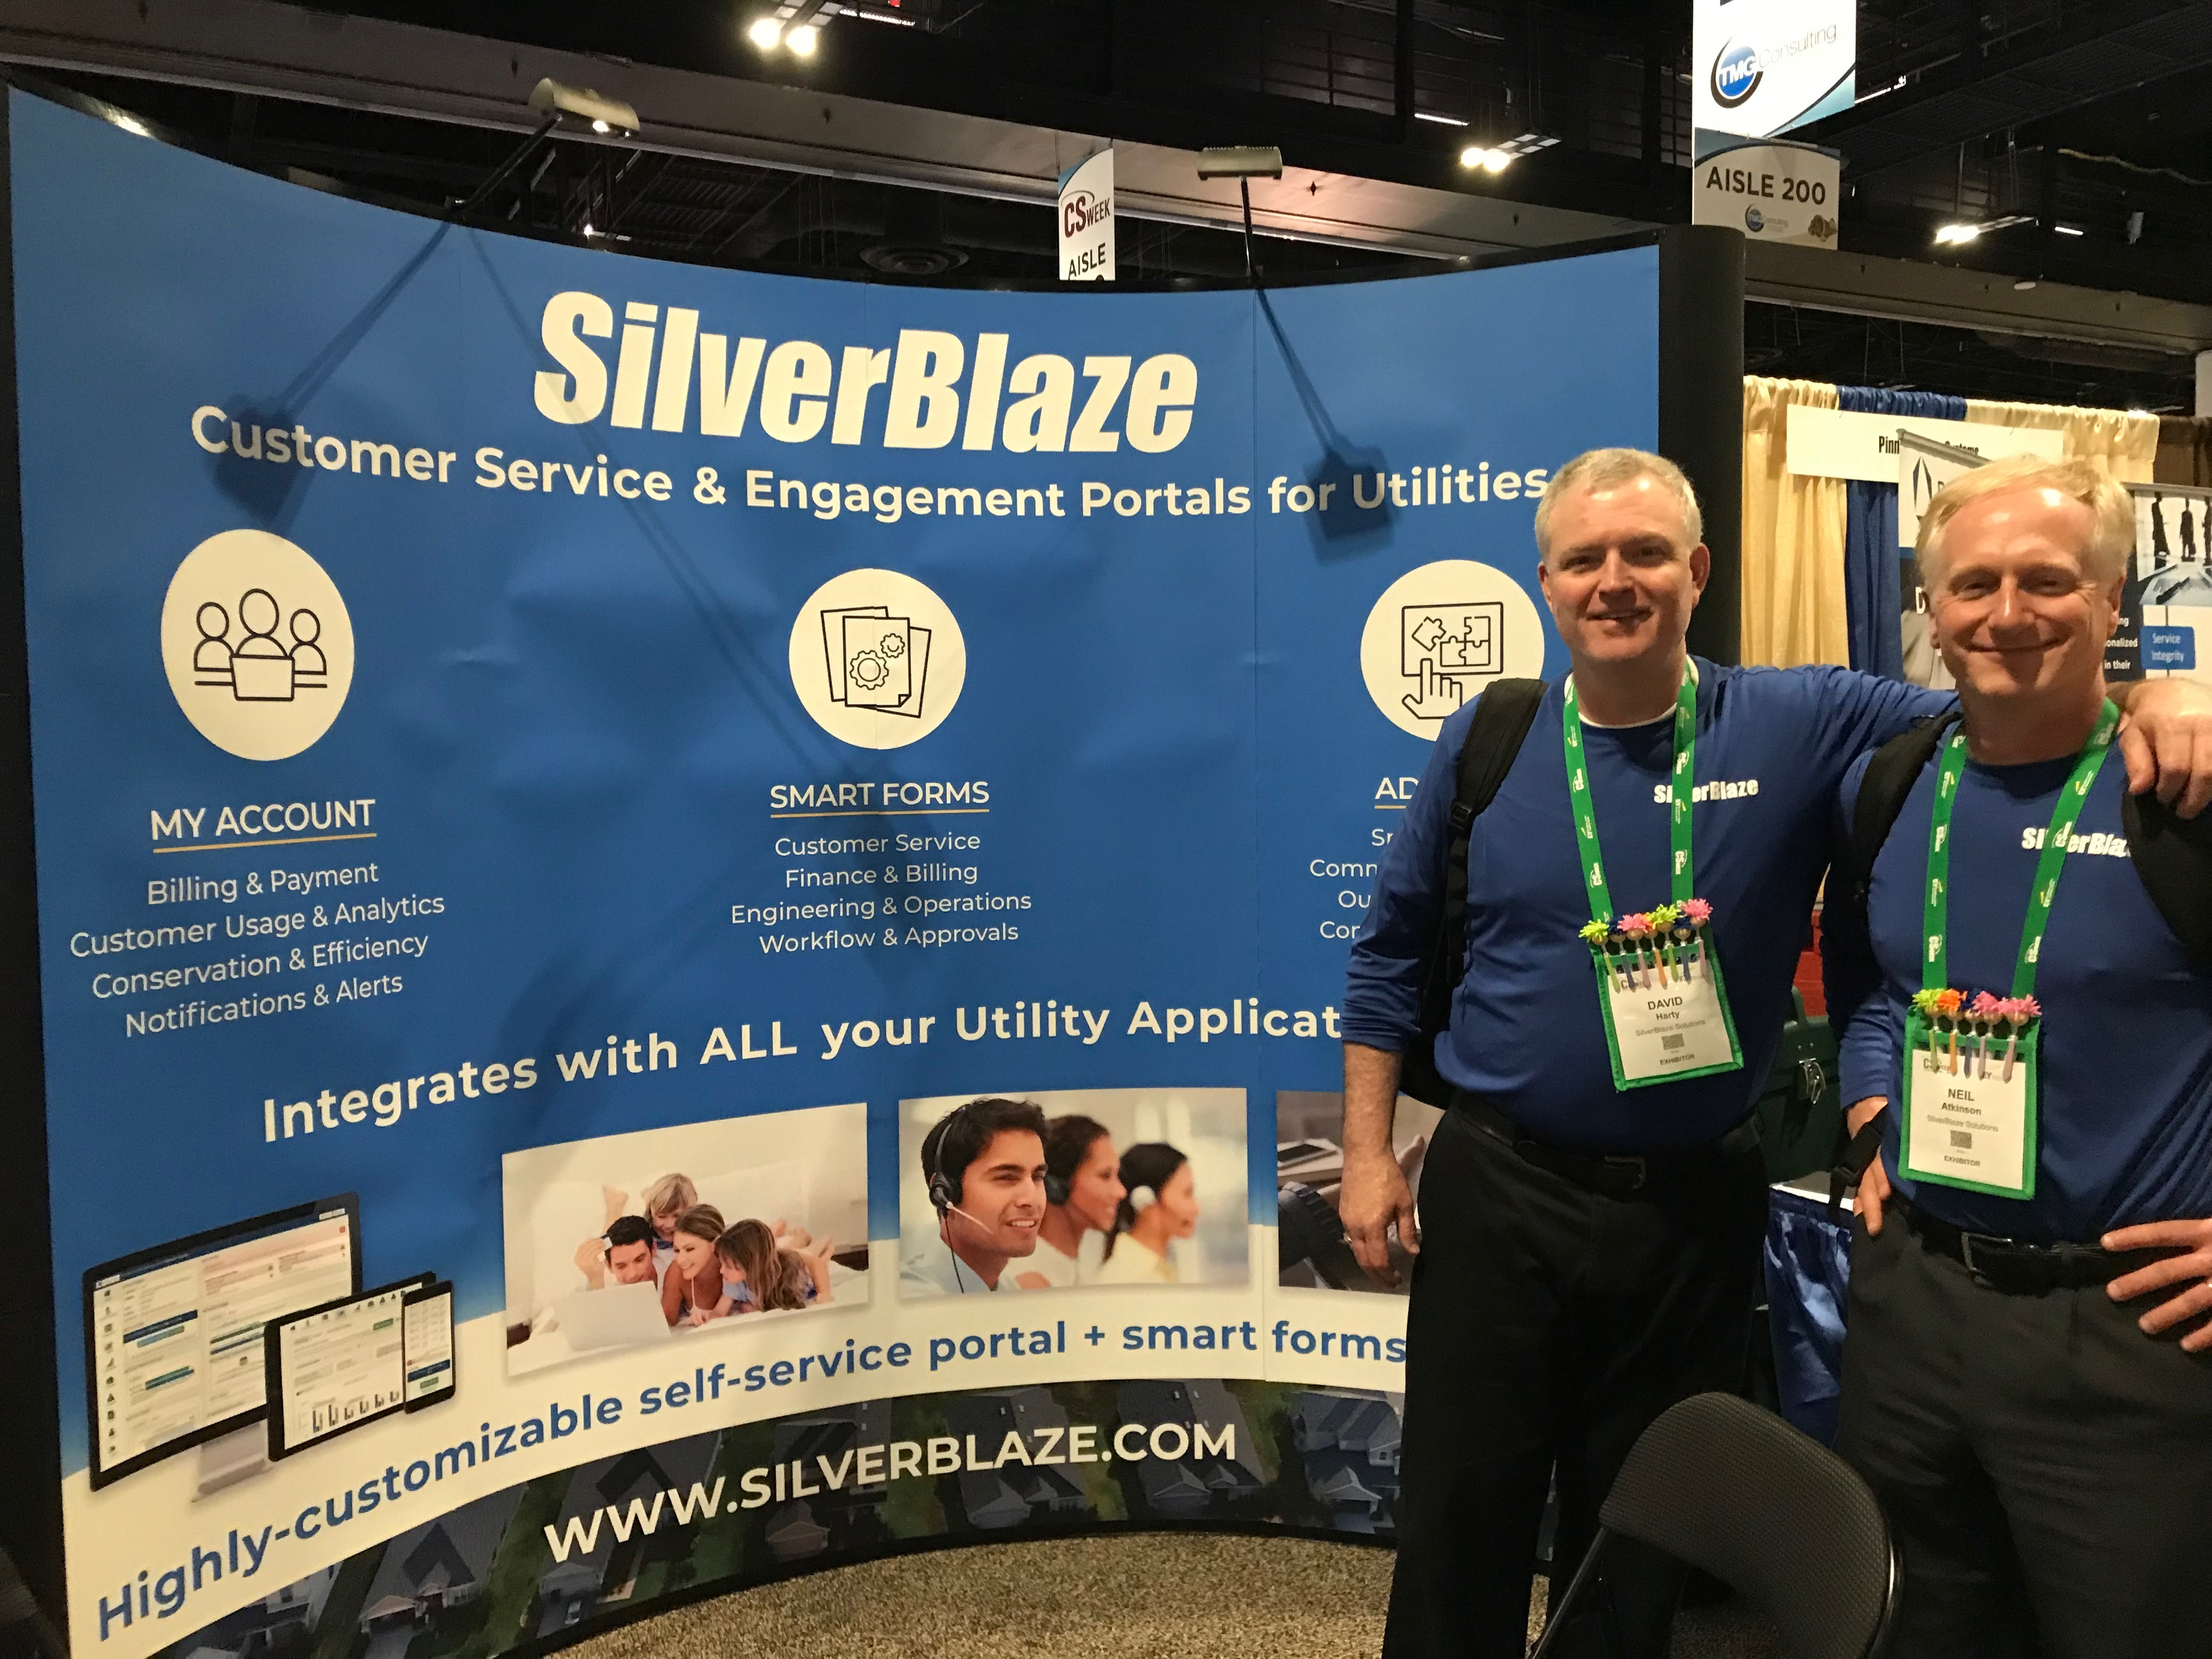 The silverBlaze stand